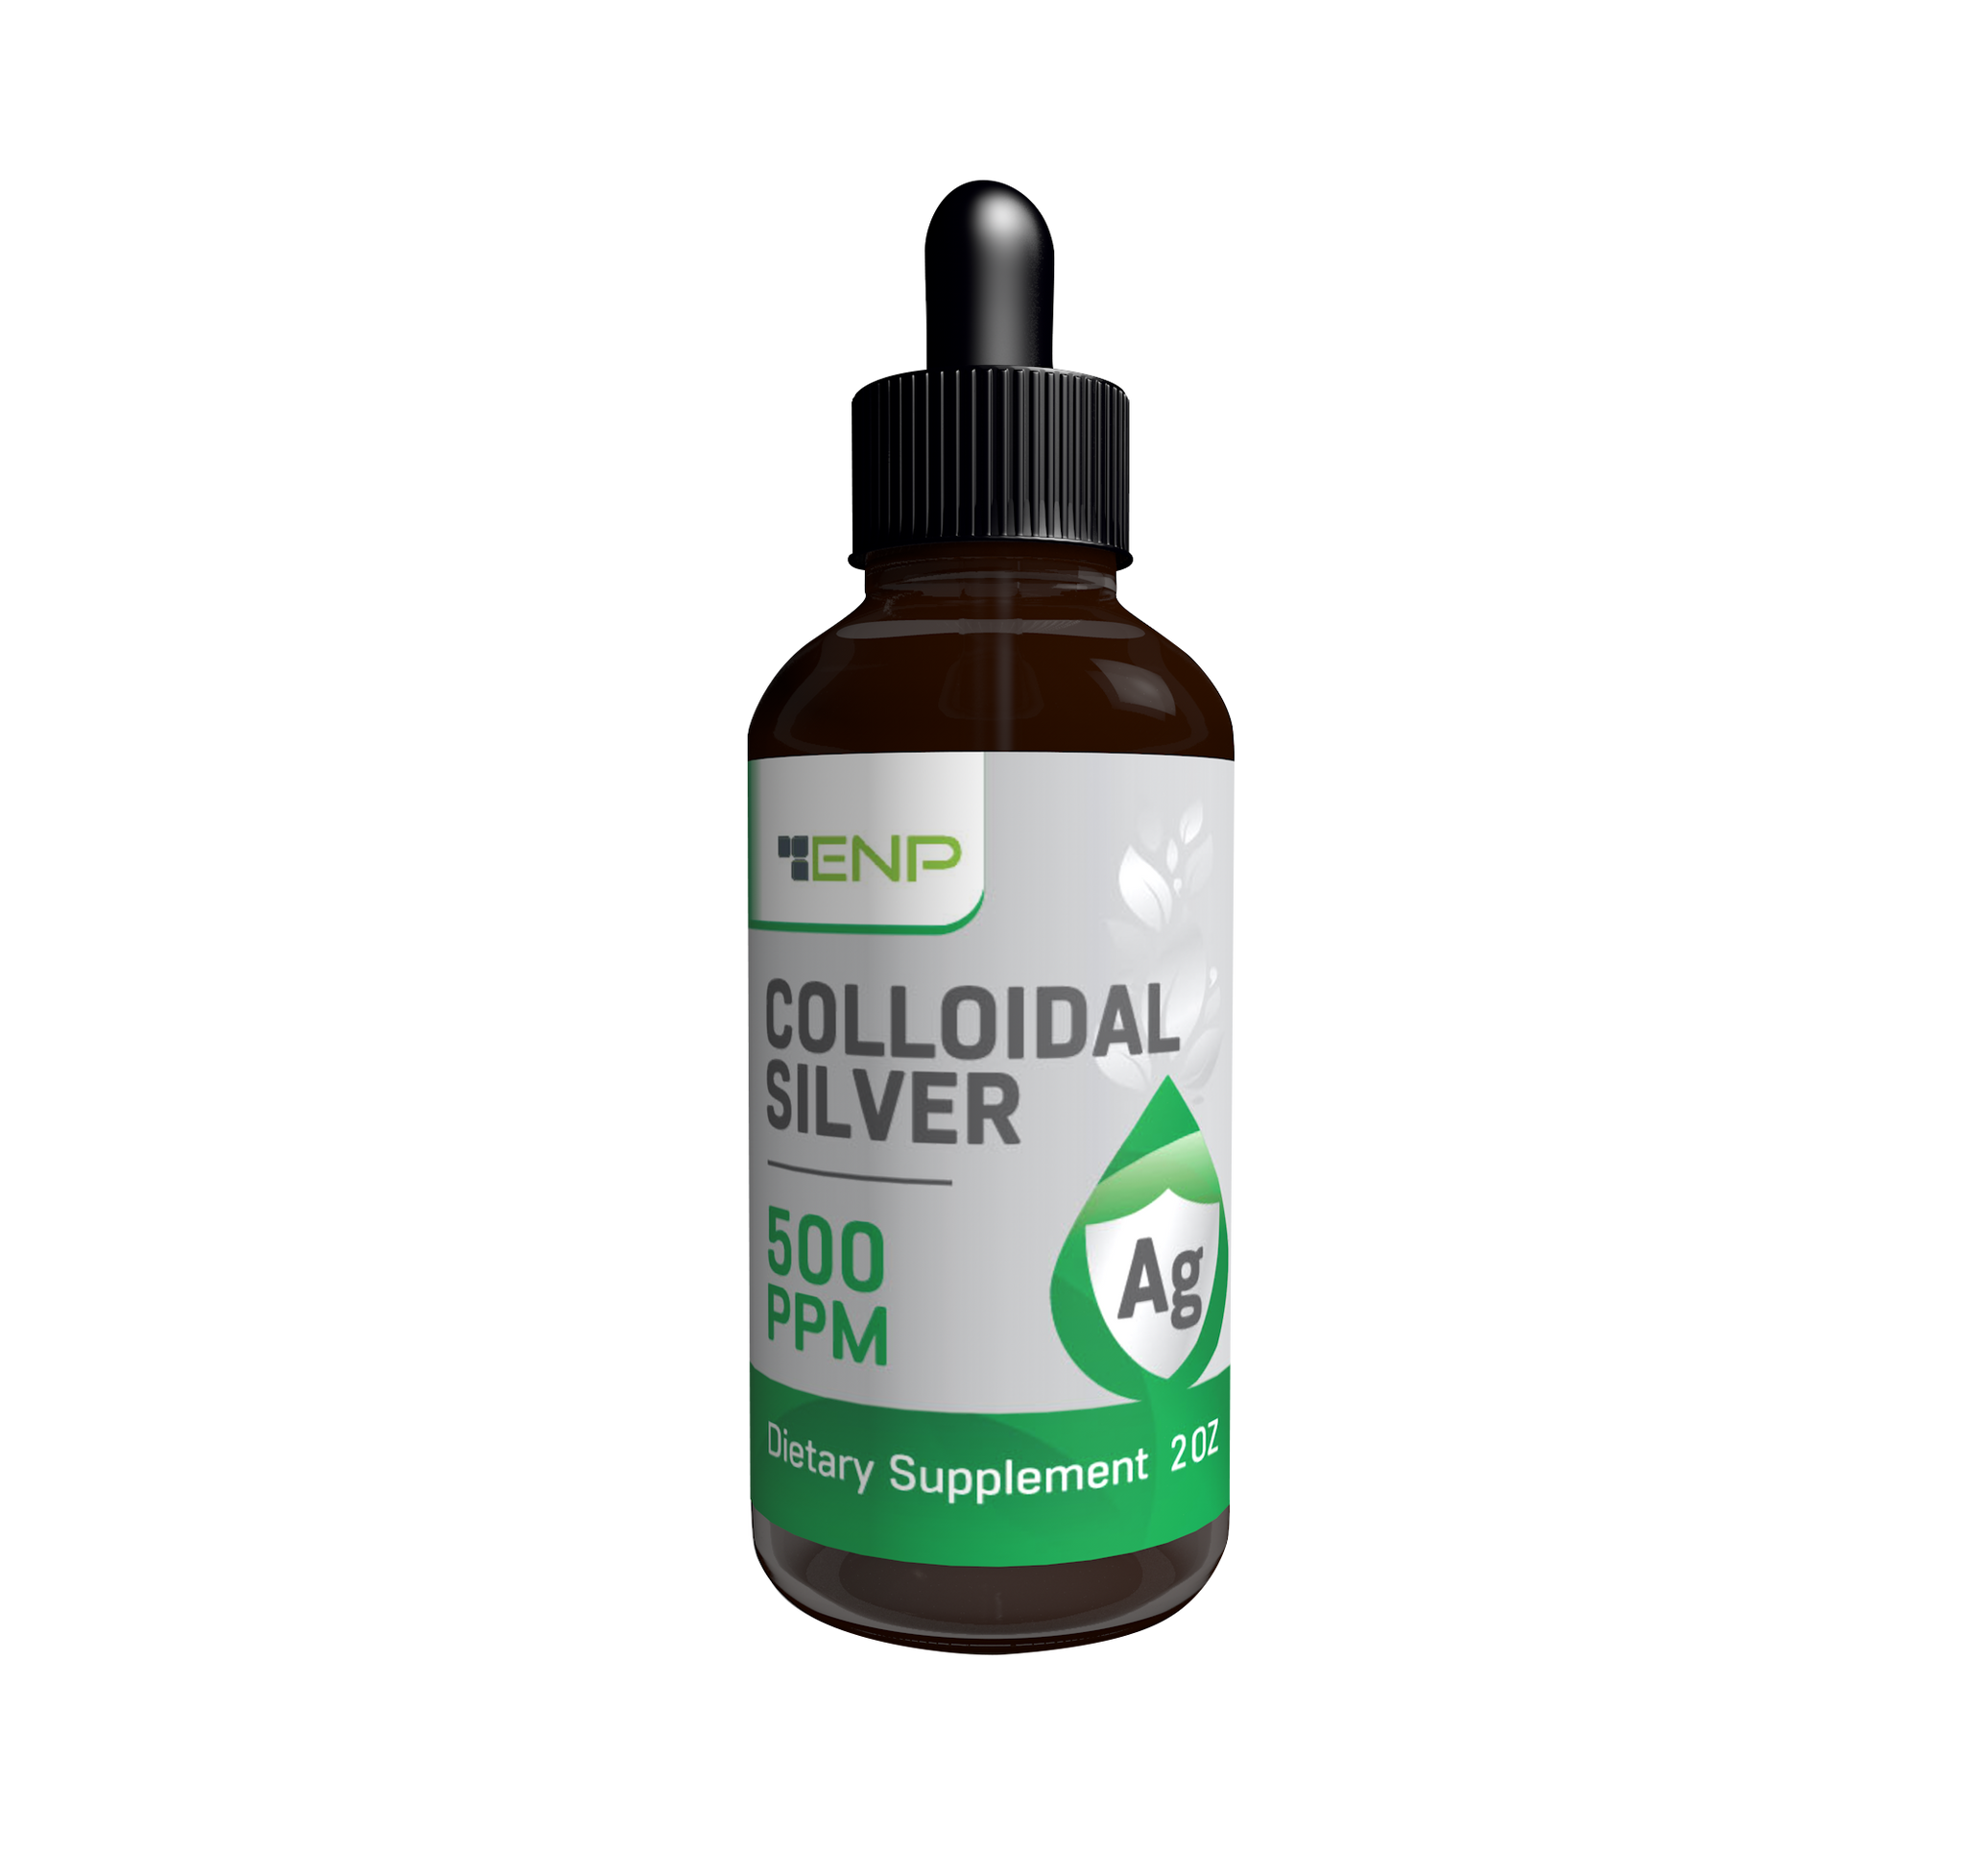 colloidal silver supplement -500 PPM